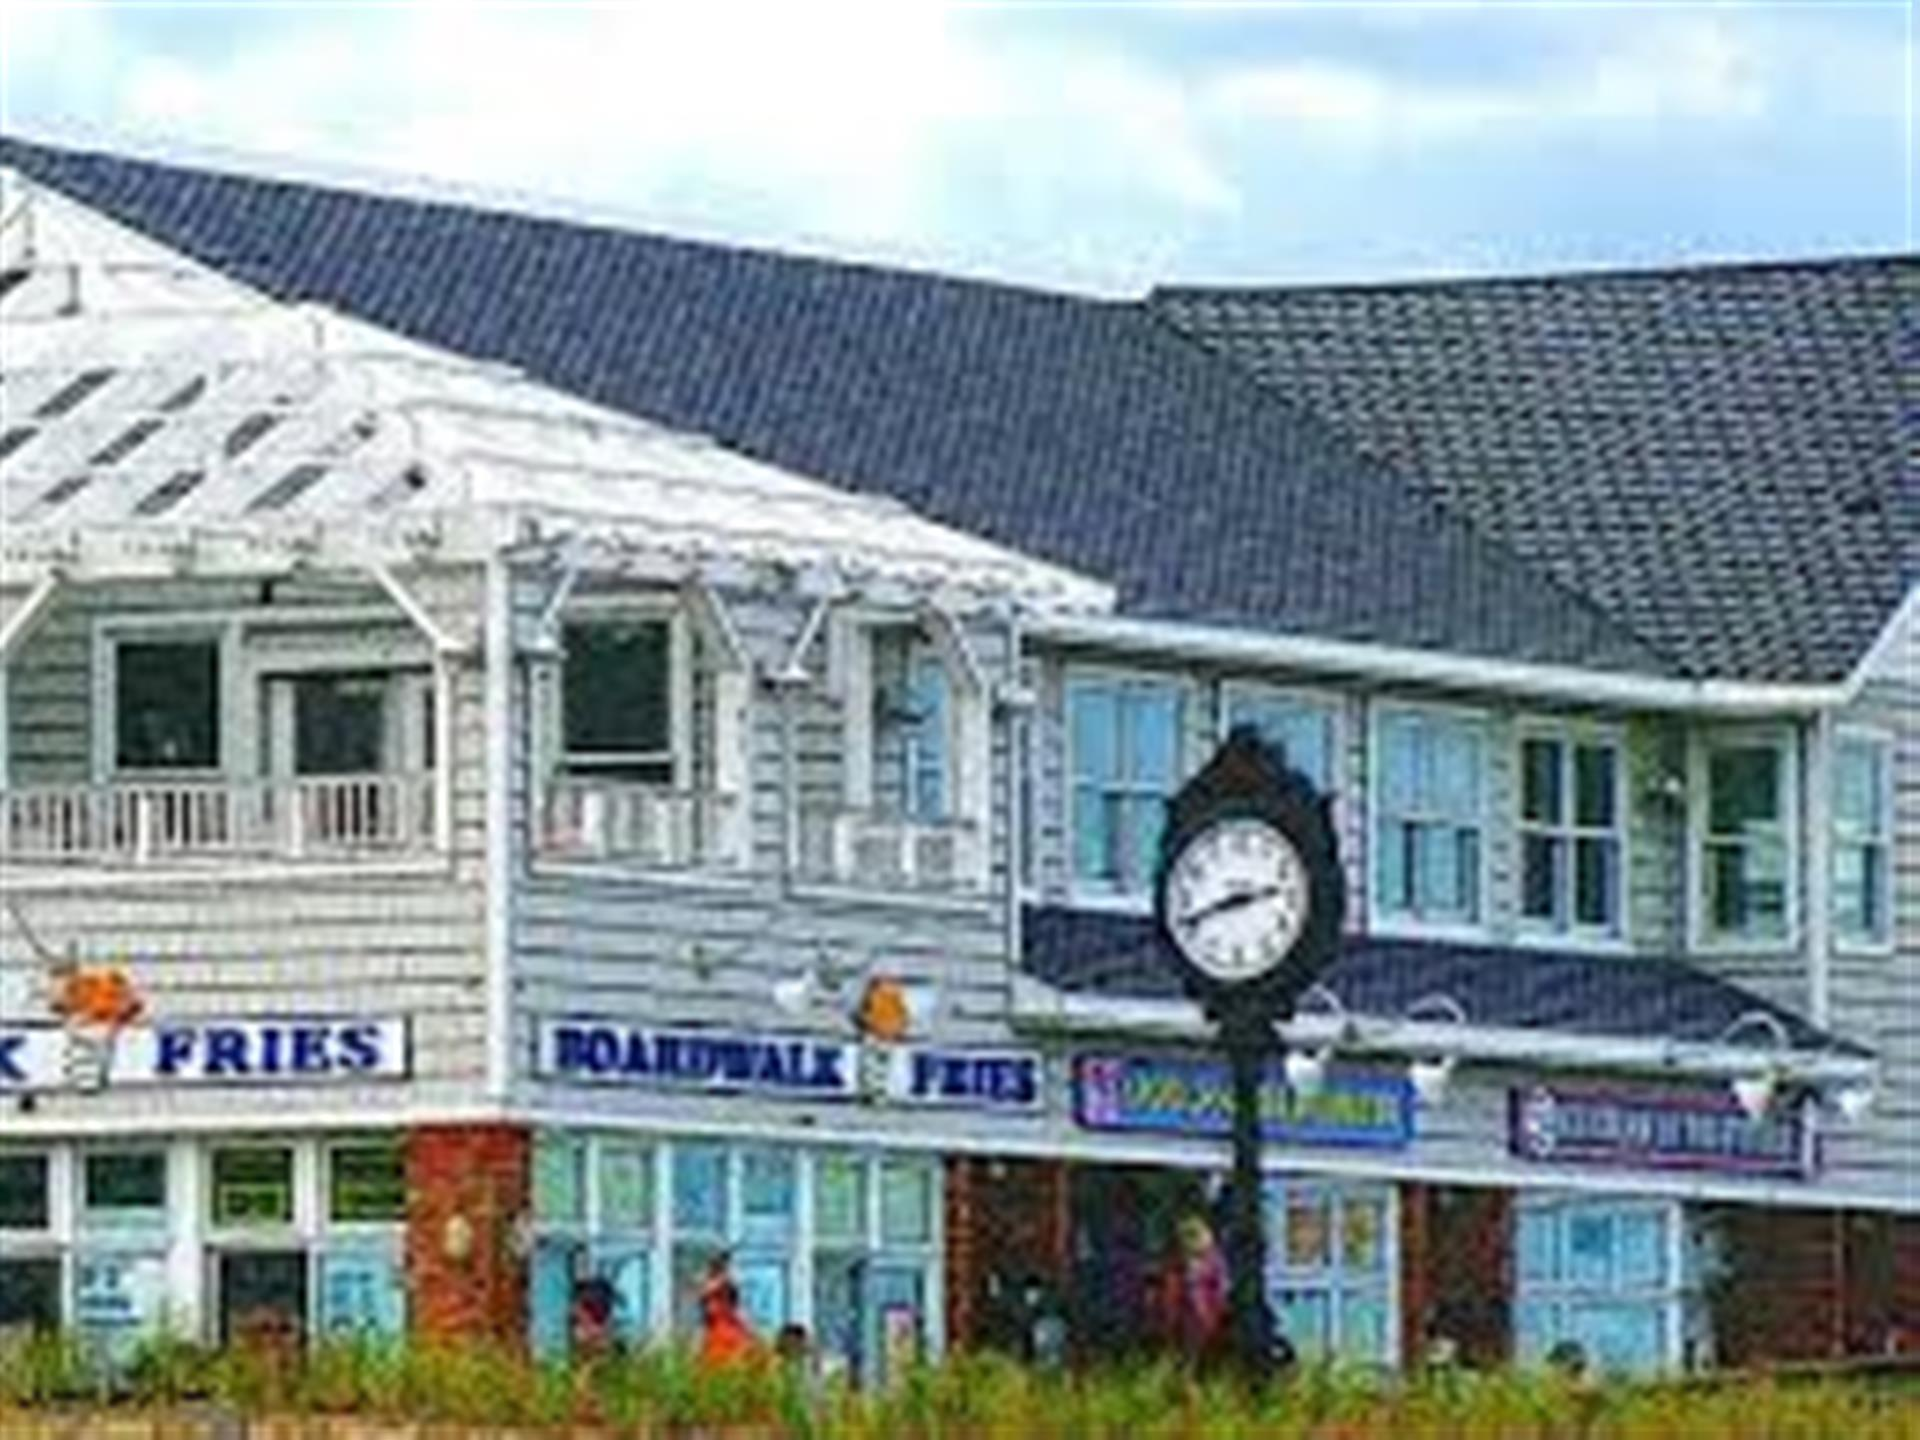 Exterior of Boardwalk Fries Building